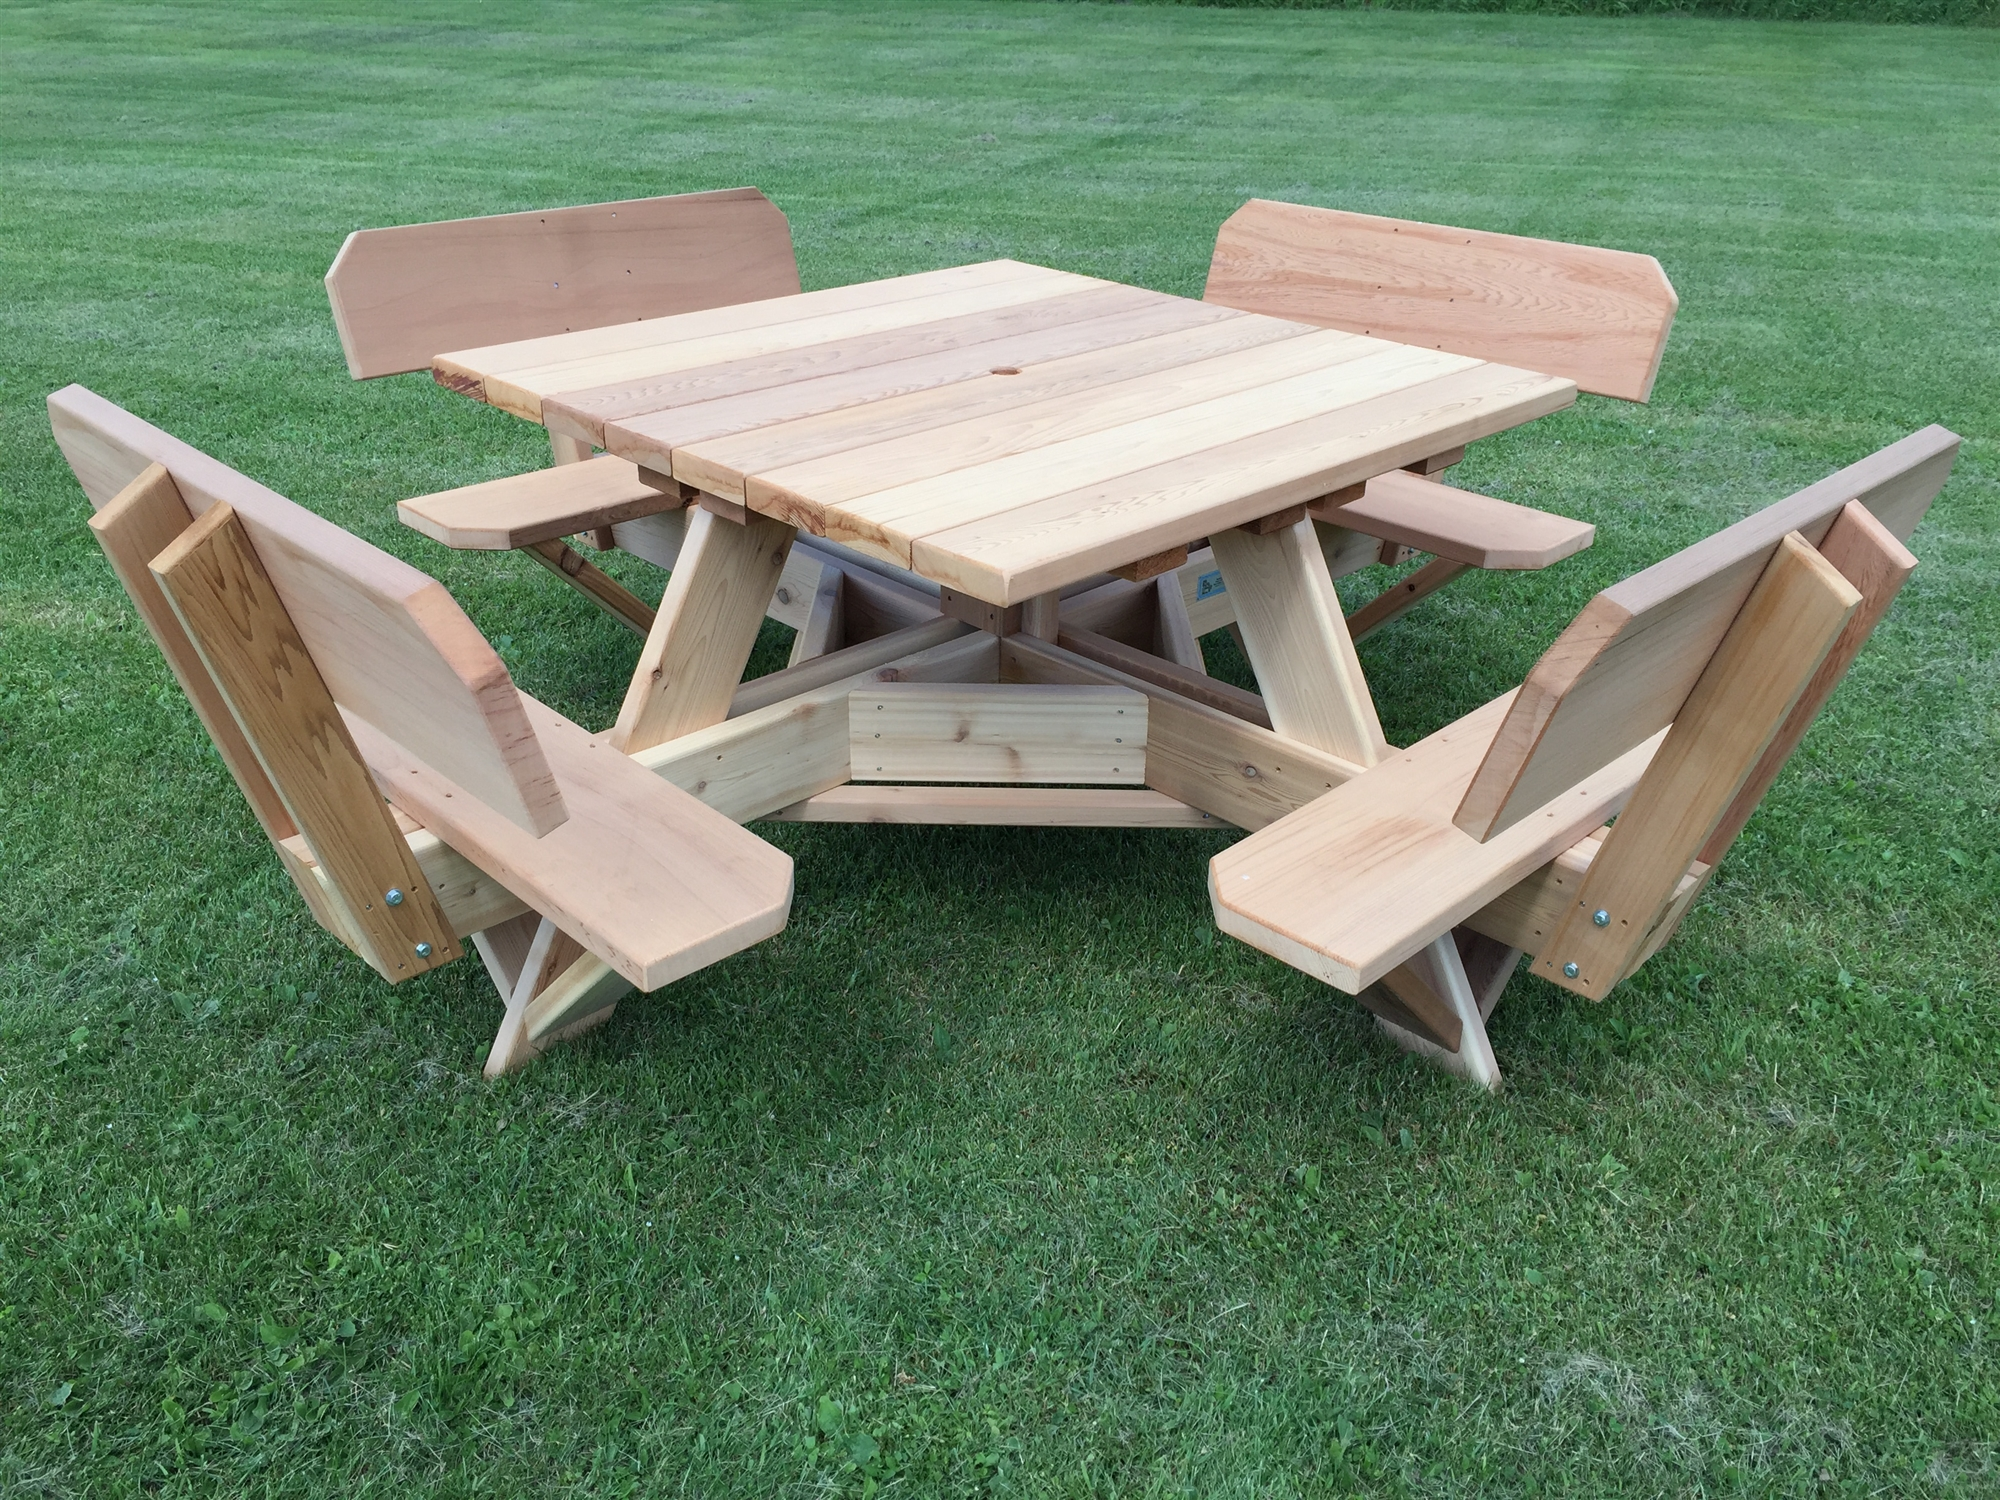 Brilliant 45 Square Picnic Table With Backs On Seats Beatyapartments Chair Design Images Beatyapartmentscom